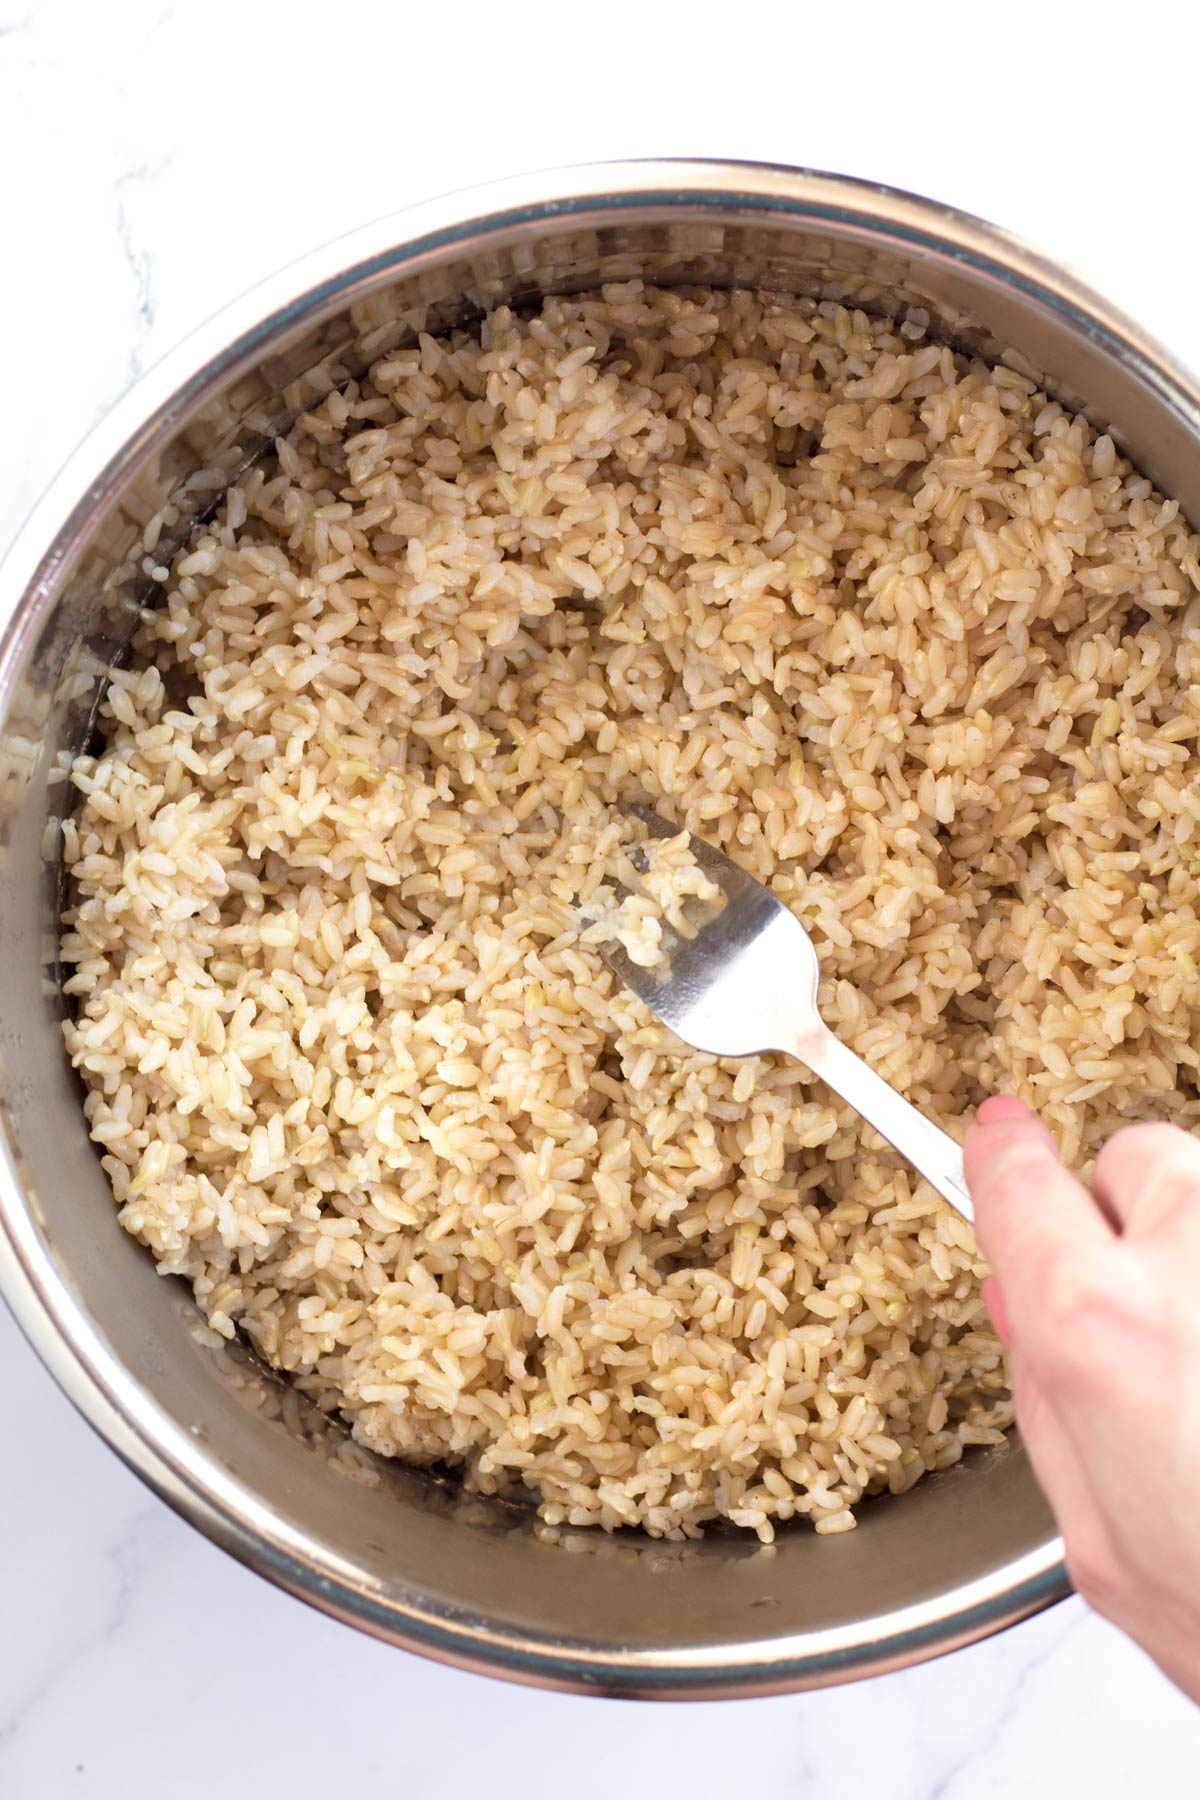 Using a fork to fluff rice before freezing.